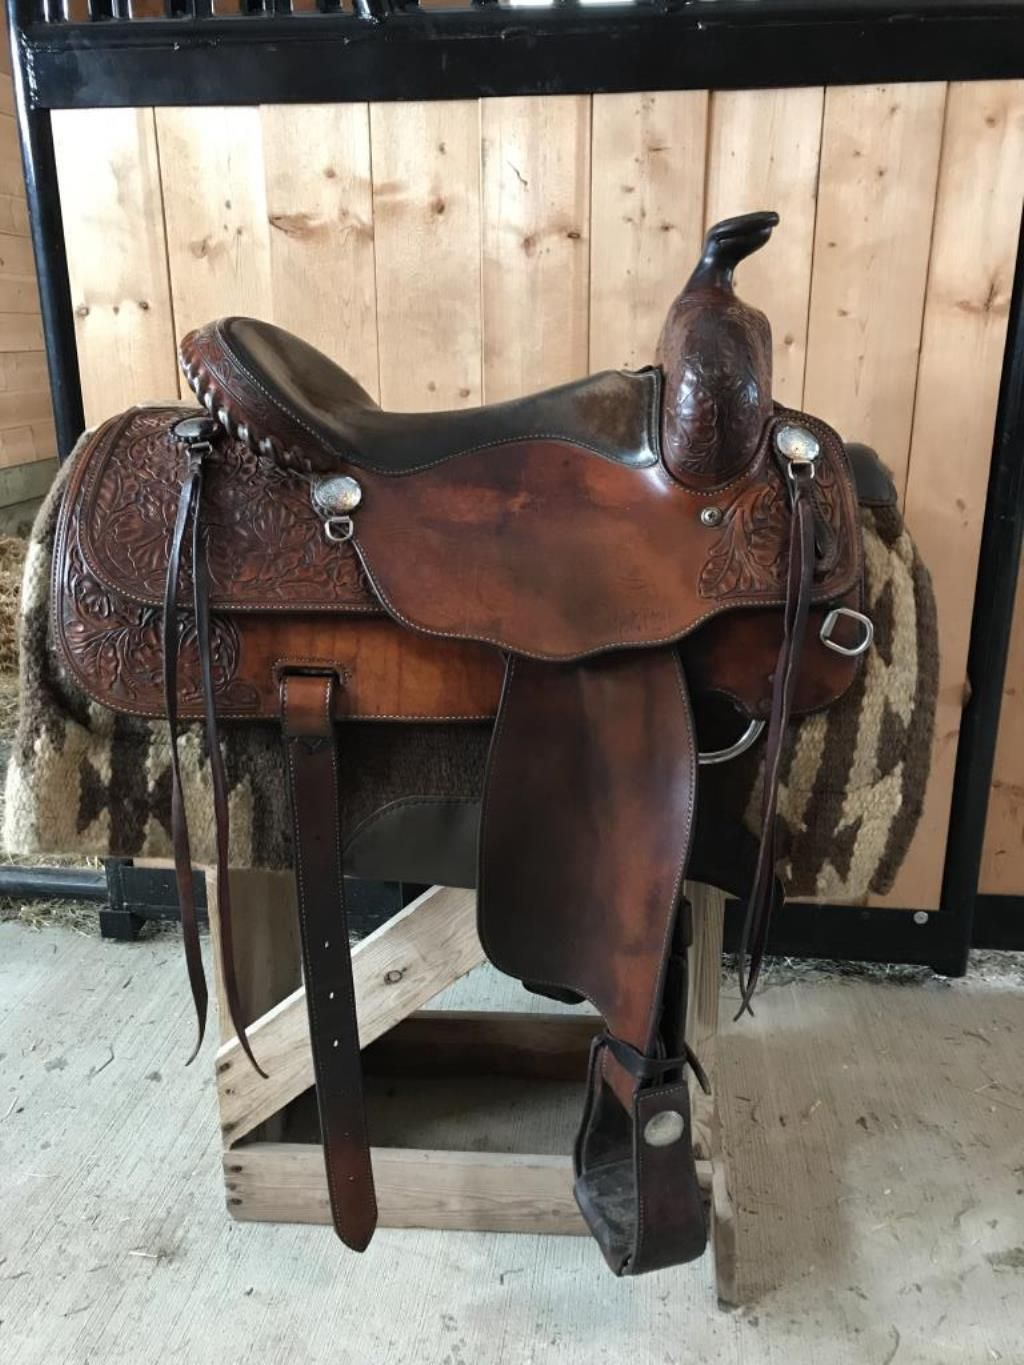 Vic Bennett 16 Saddle For Sale Comfortable Good Looking Working Cow 16 Vic Bennett Western Saddle Does Not Fi Western Saddle Cute Horses Saddles For Sale